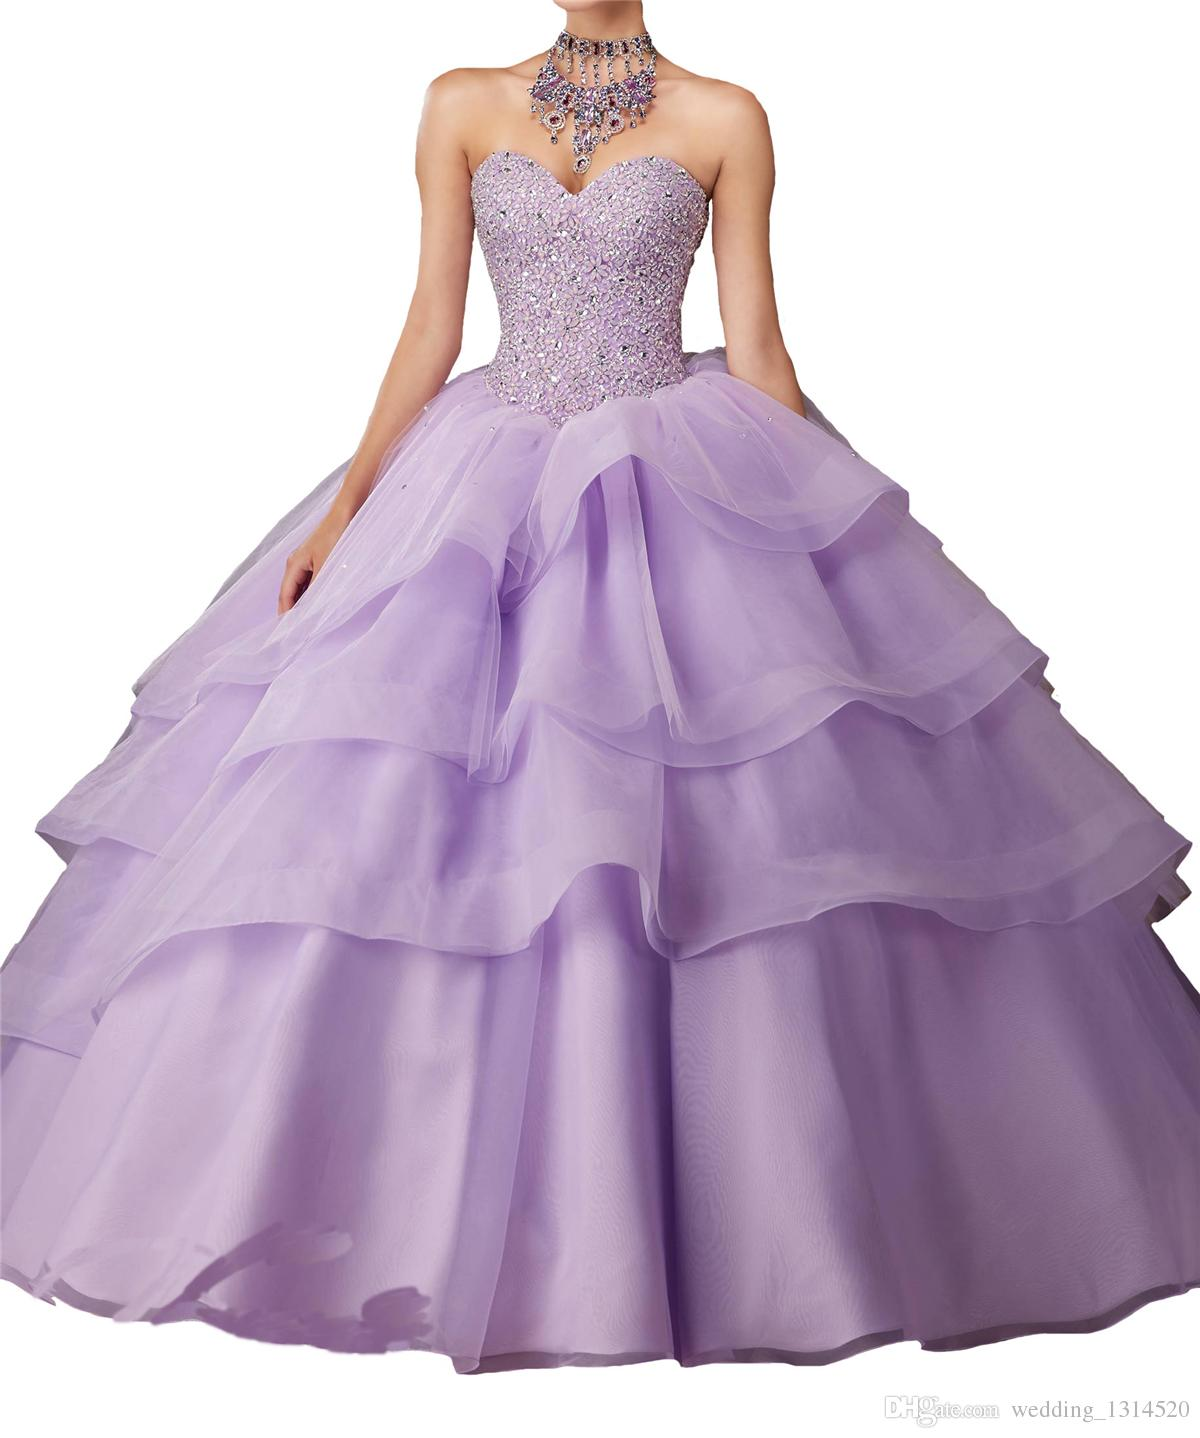 New Girls 15 16 Pageant Ball Gowns Women Quinceanera Dresses Sweetheart Rhinestone Organza Crystal Free Shipping factory outlet drop ship